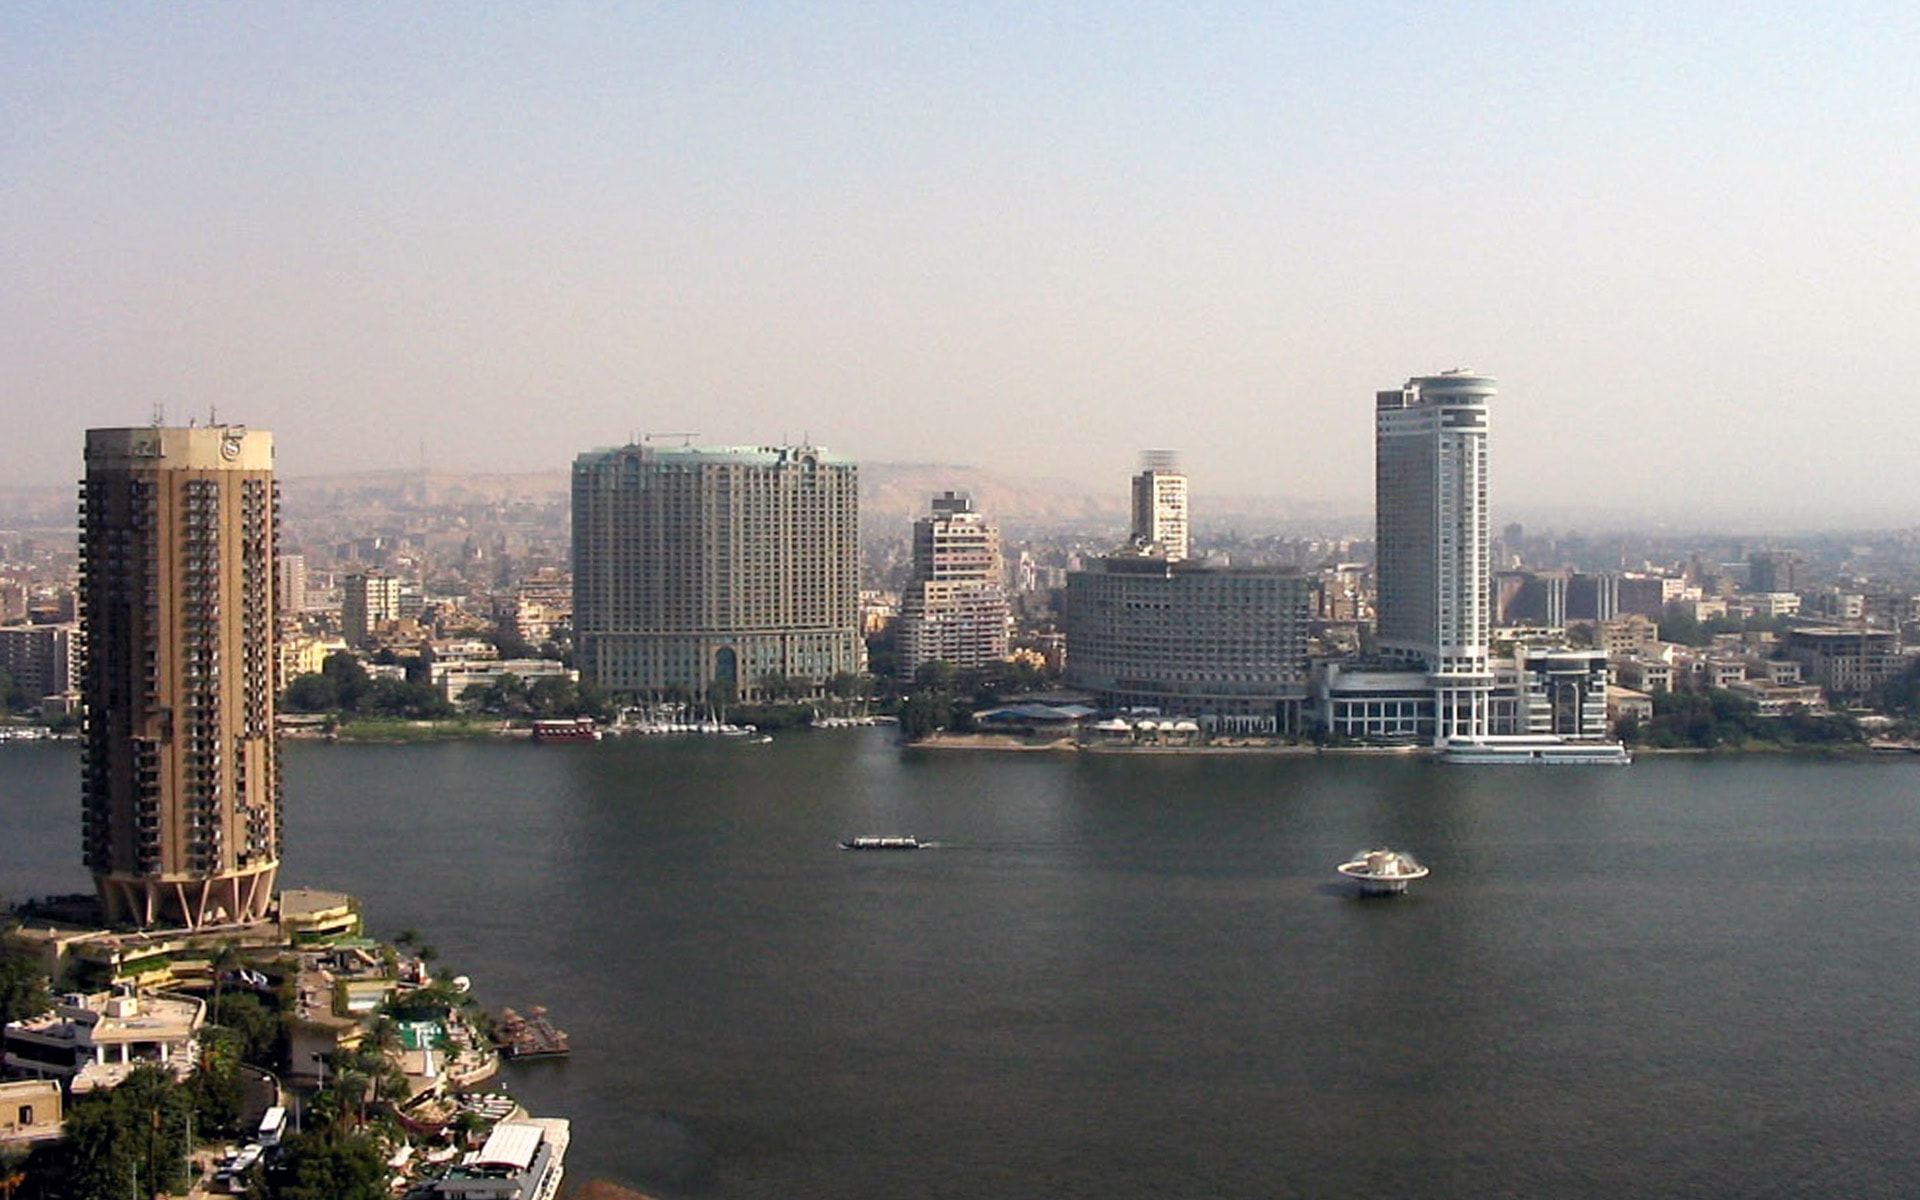 Cairo for mobile